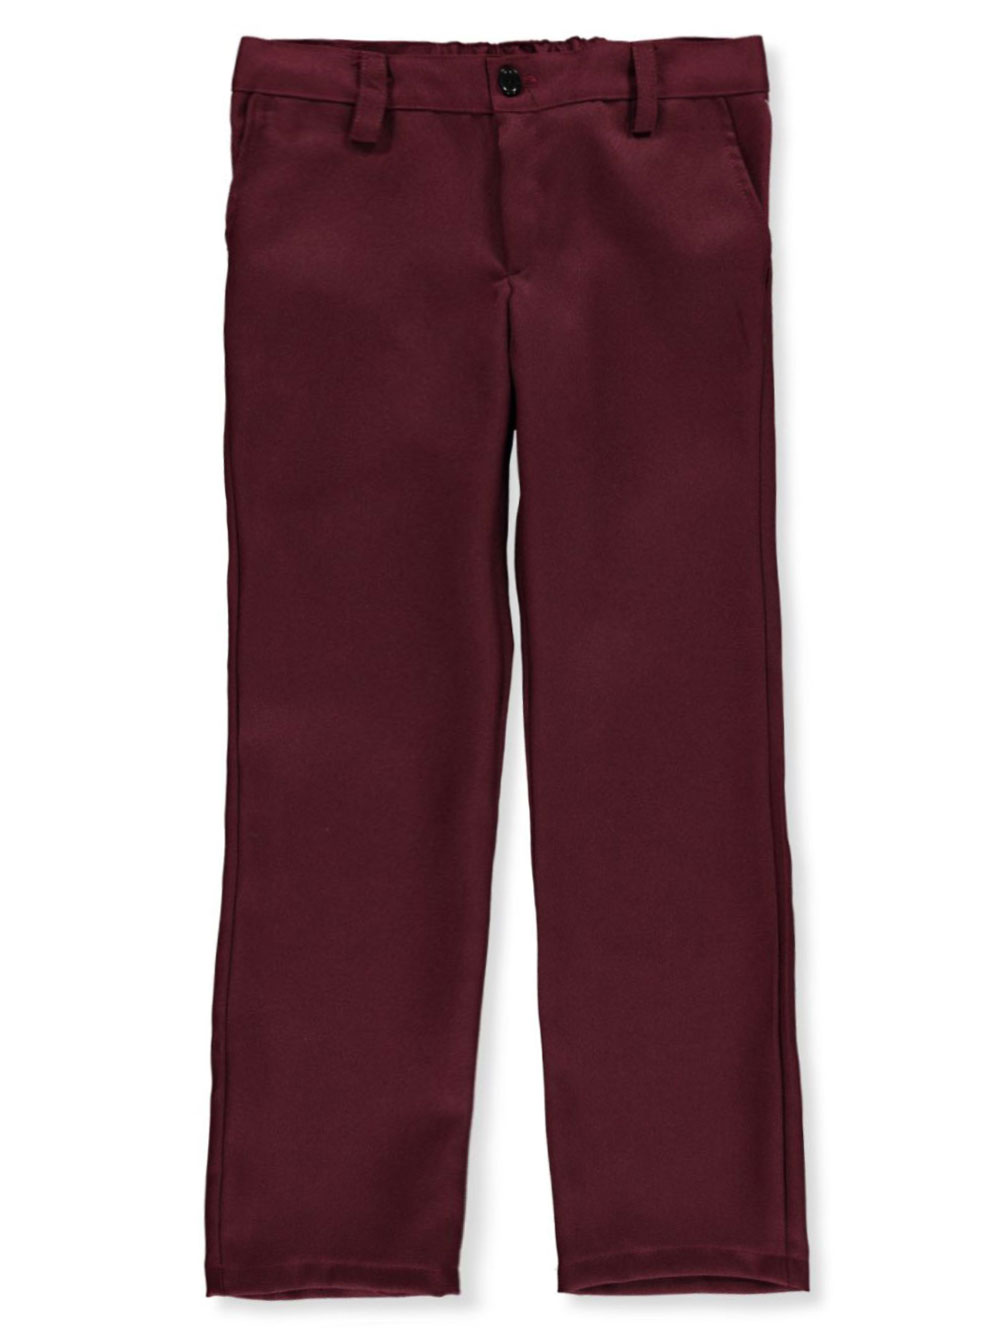 Size 10 Pants for Girls